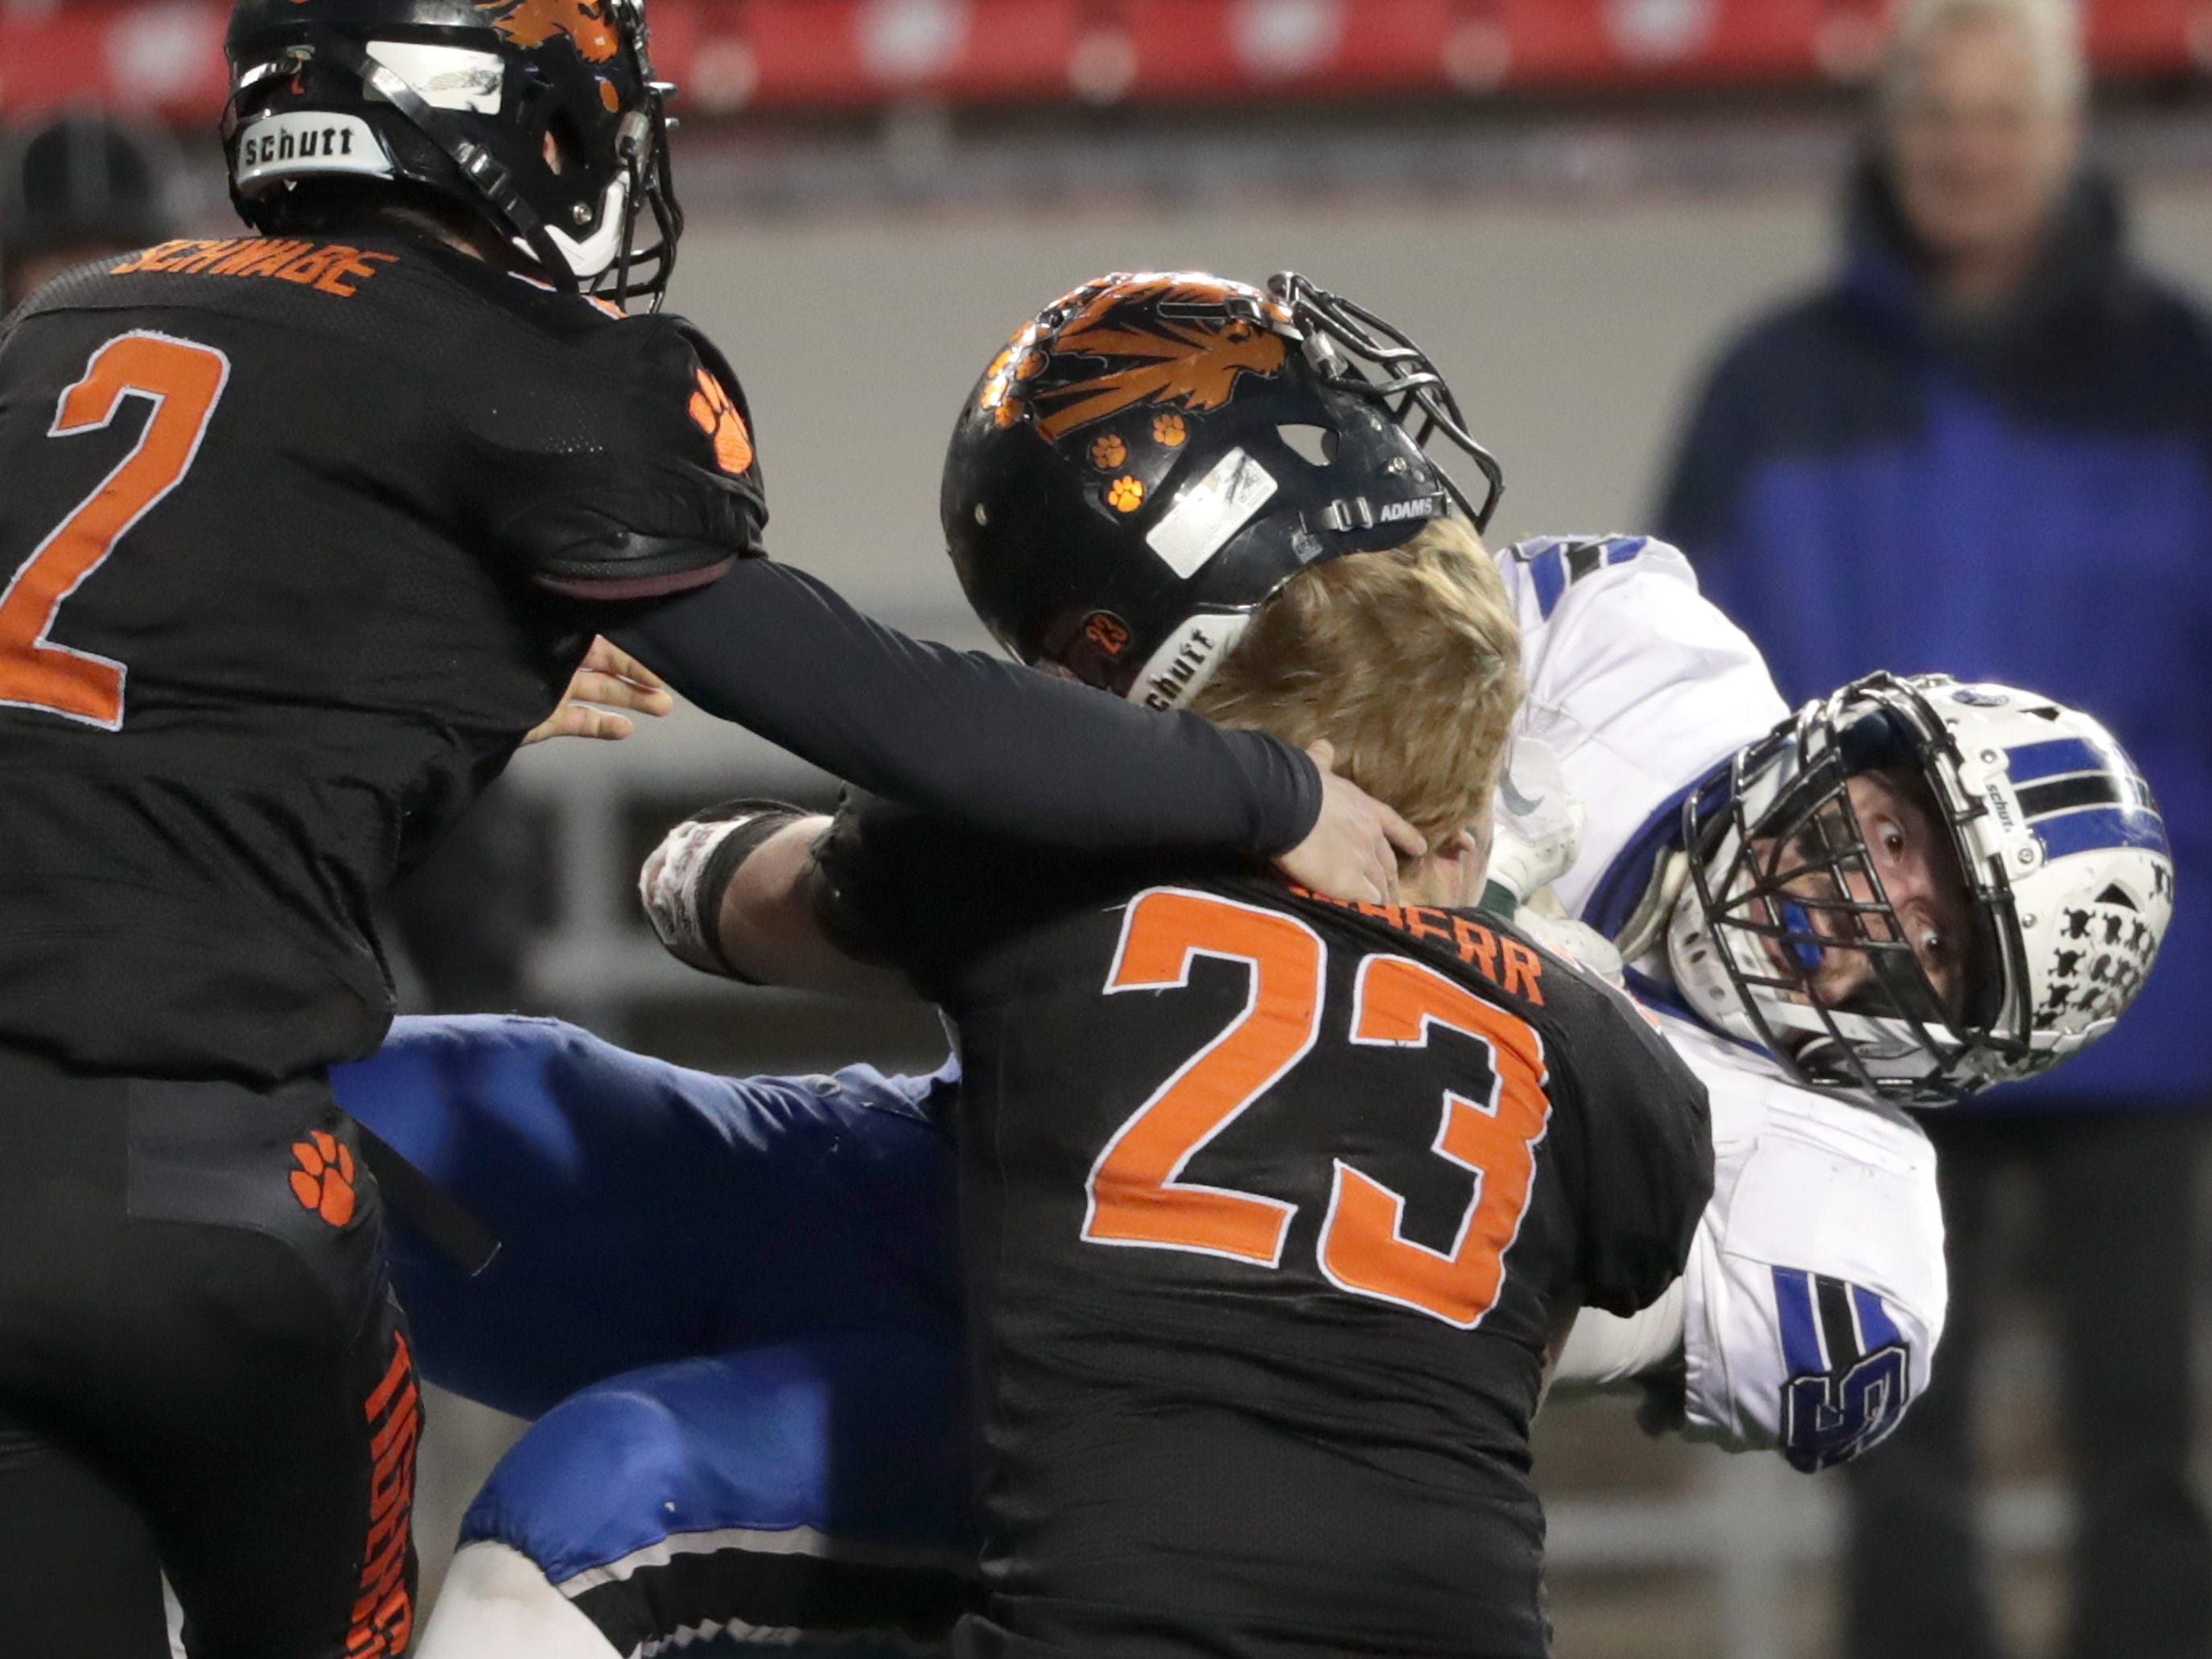 Stratford High School's 323 Justin Schoenherr tackles St. Mary's Springs Academy's #35 Marcus Orlandoni during the WIAA Division  5 state championship football game on Thursday, November 15, 2018, at Camp Randall in Madison, Wis.